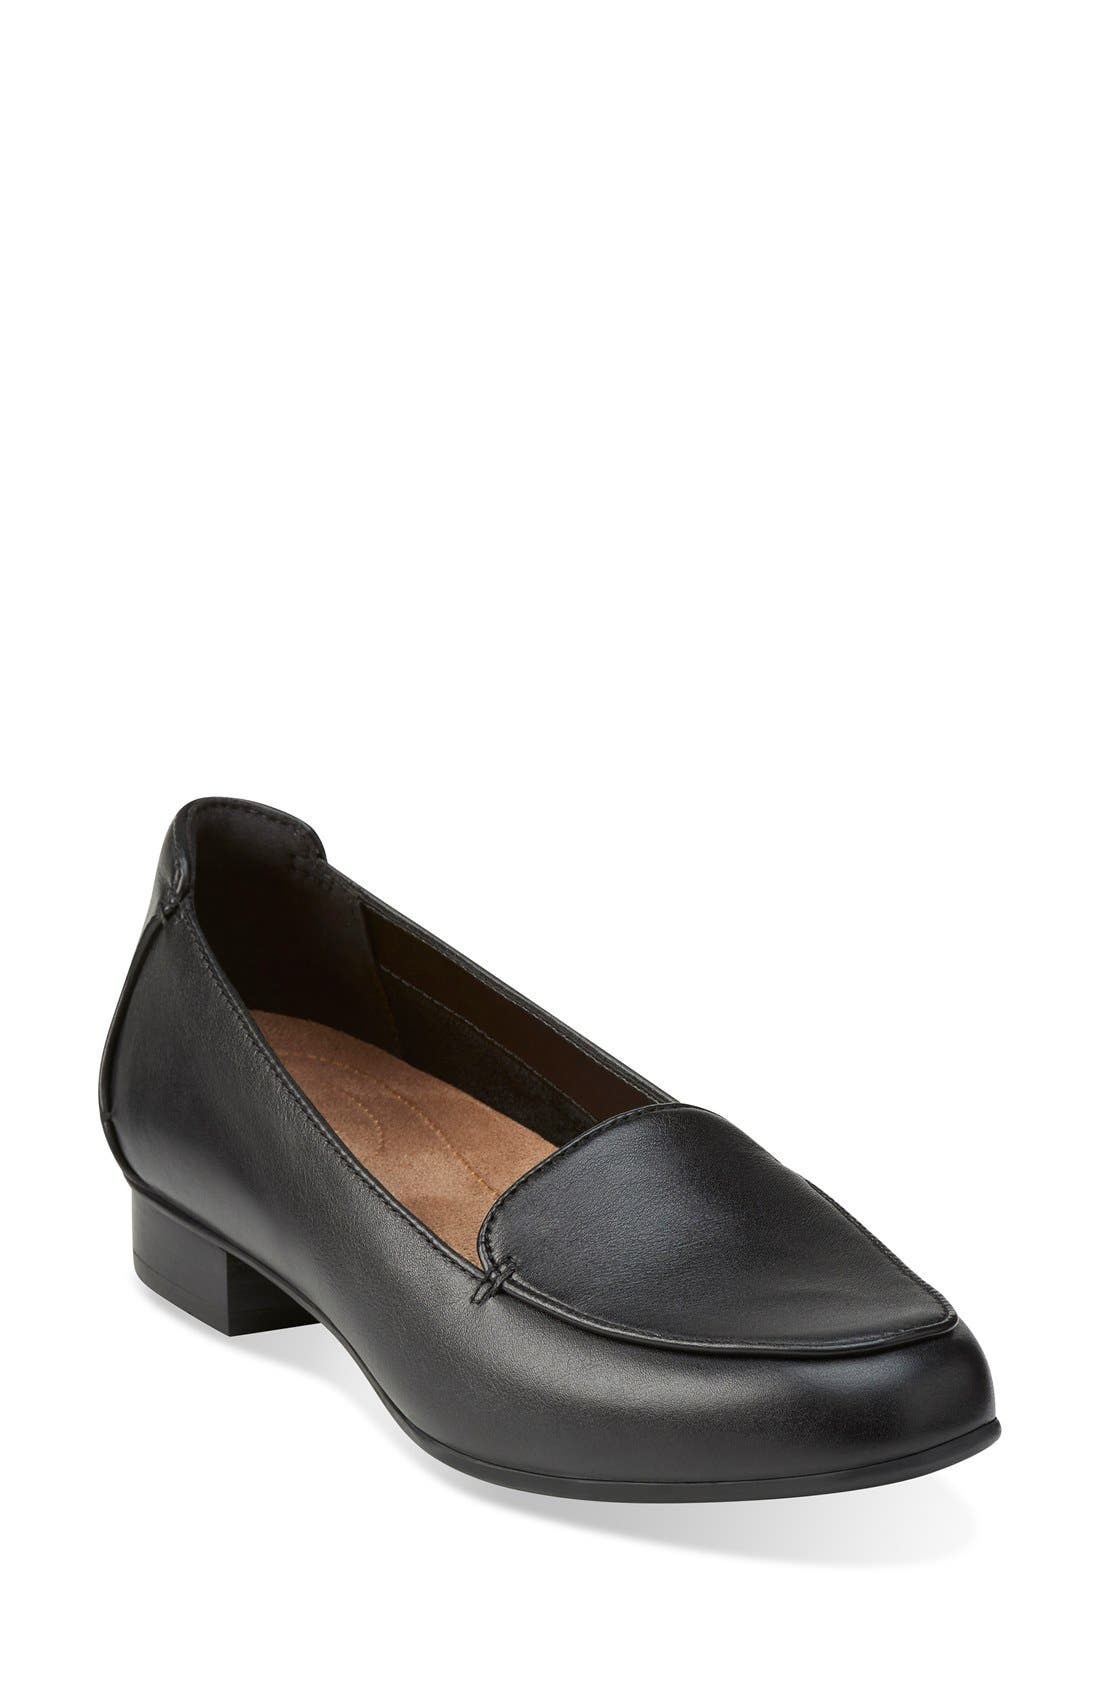 'Keesha Luca' Loafer,                             Main thumbnail 1, color,                             005